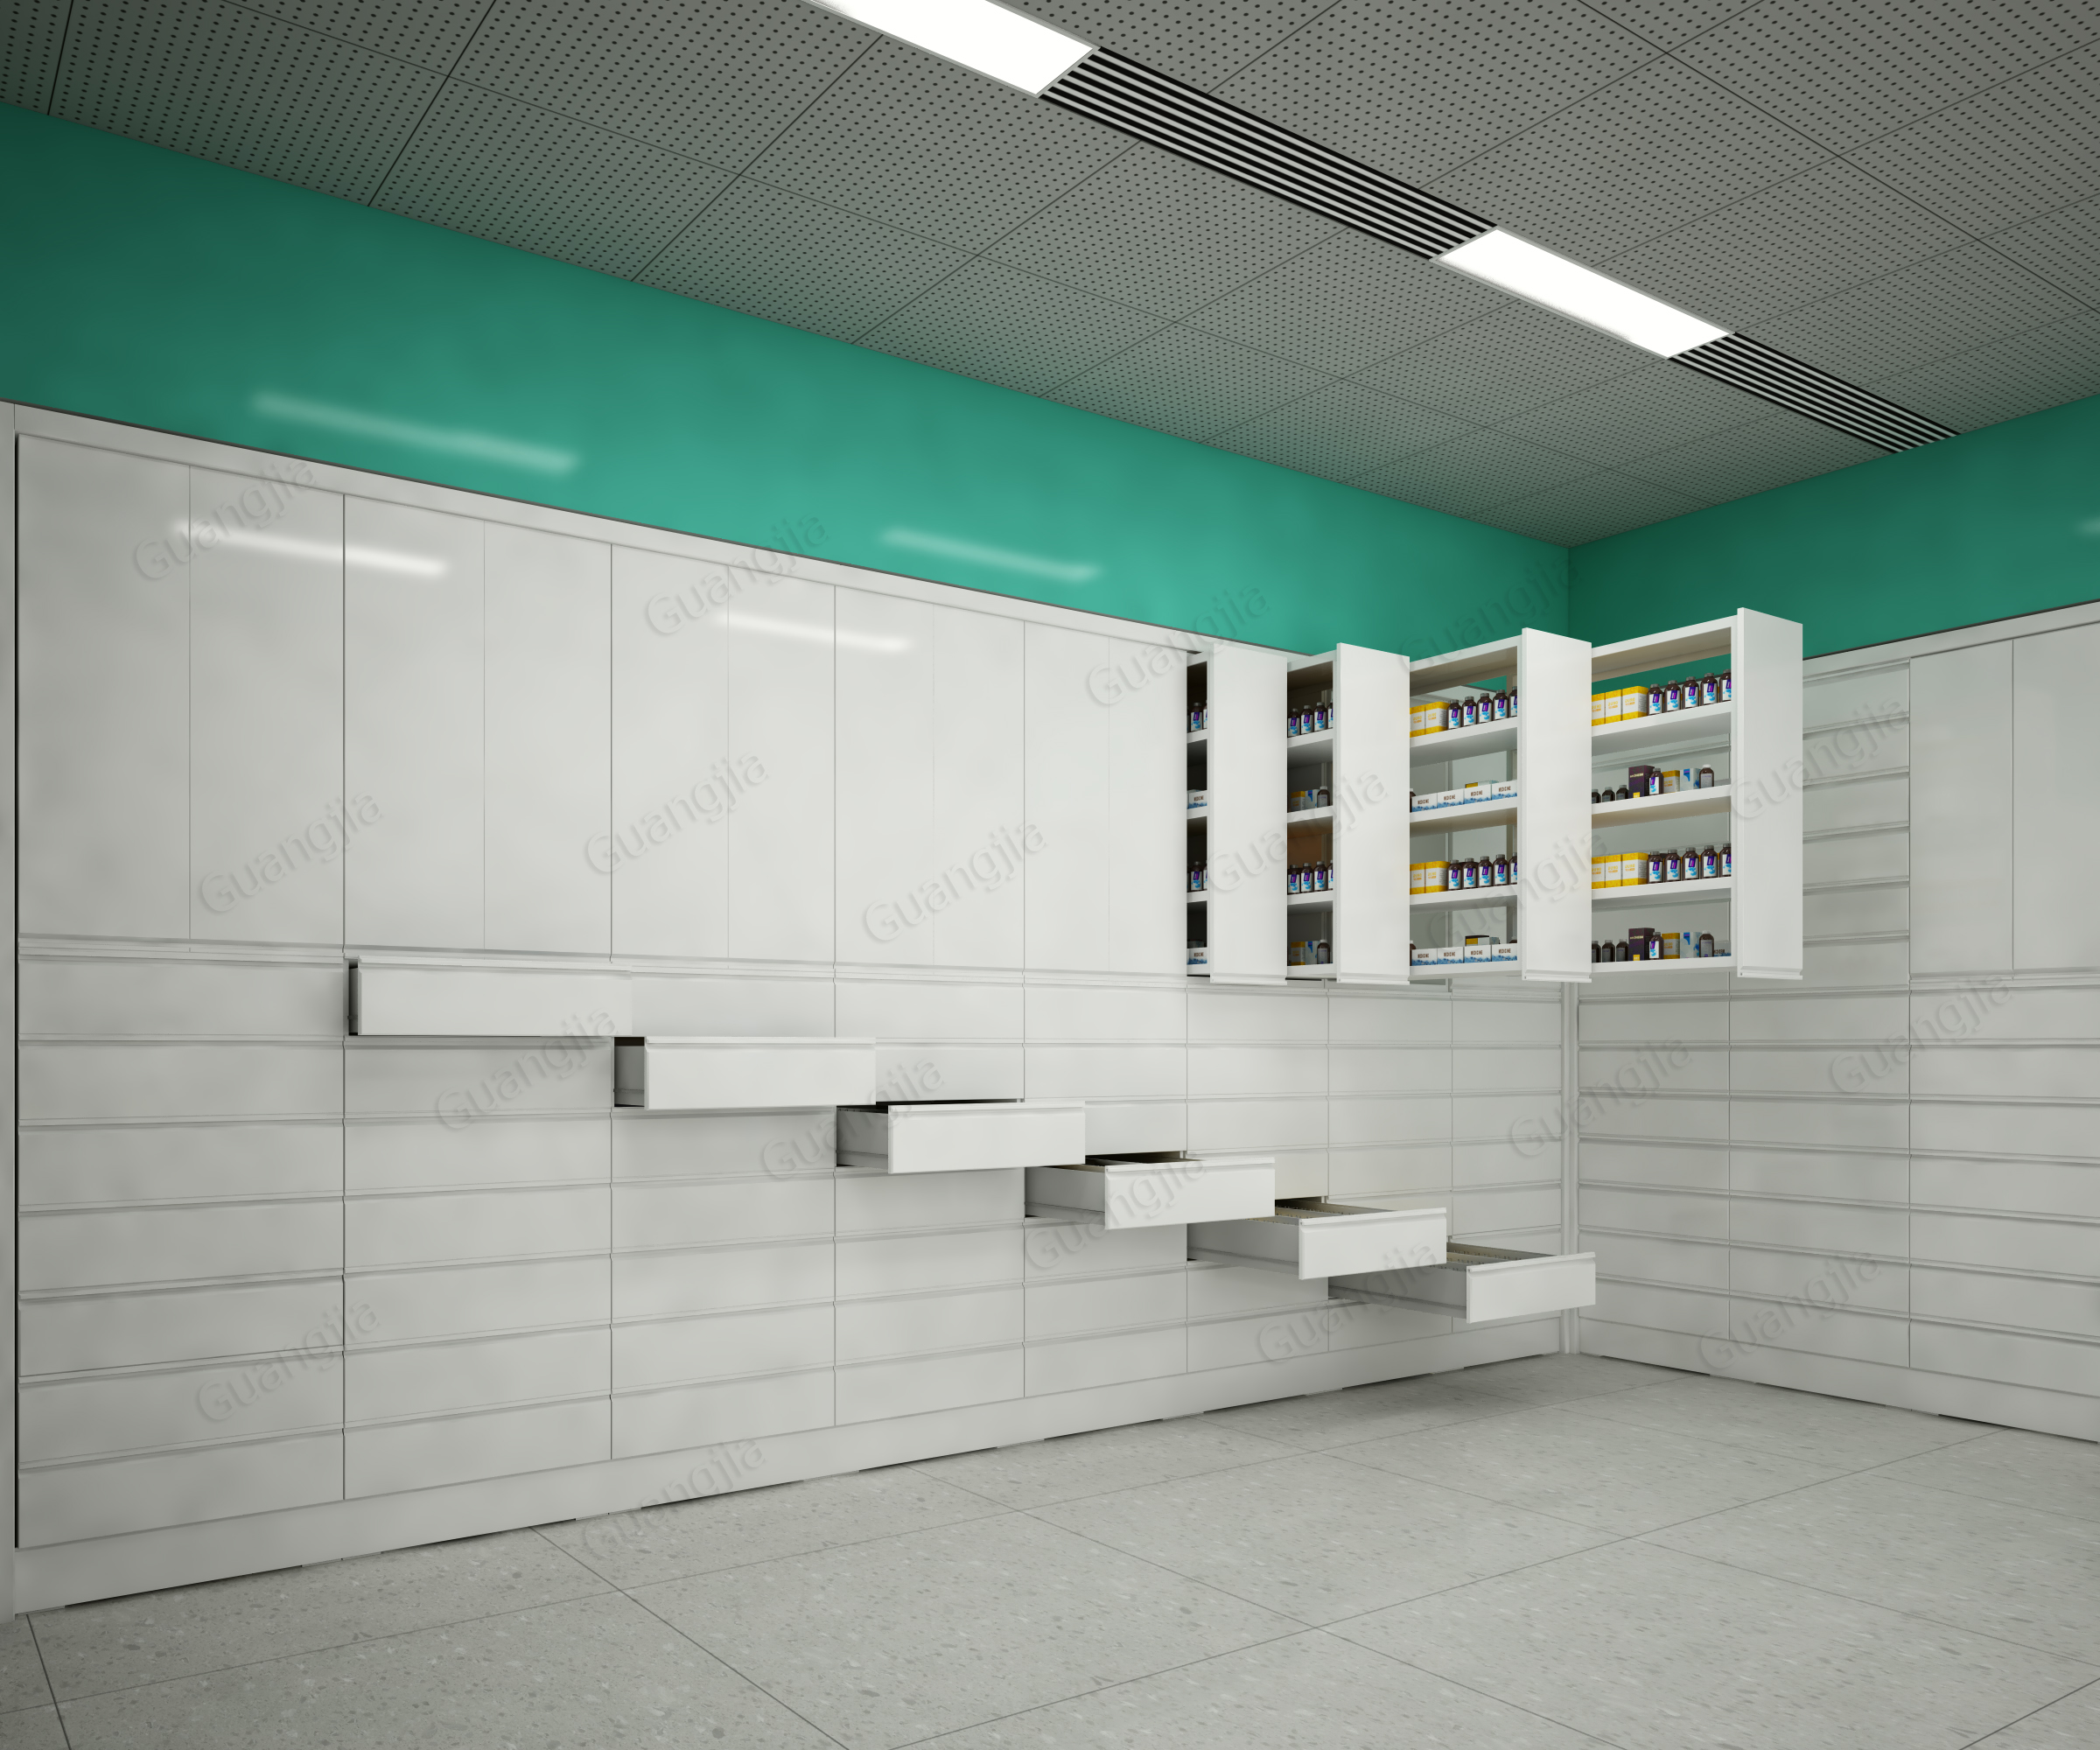 New design horizon&vertical cabinet pharmacy drawer medical storage cabinets system for sale - Drawers Solutions - 1